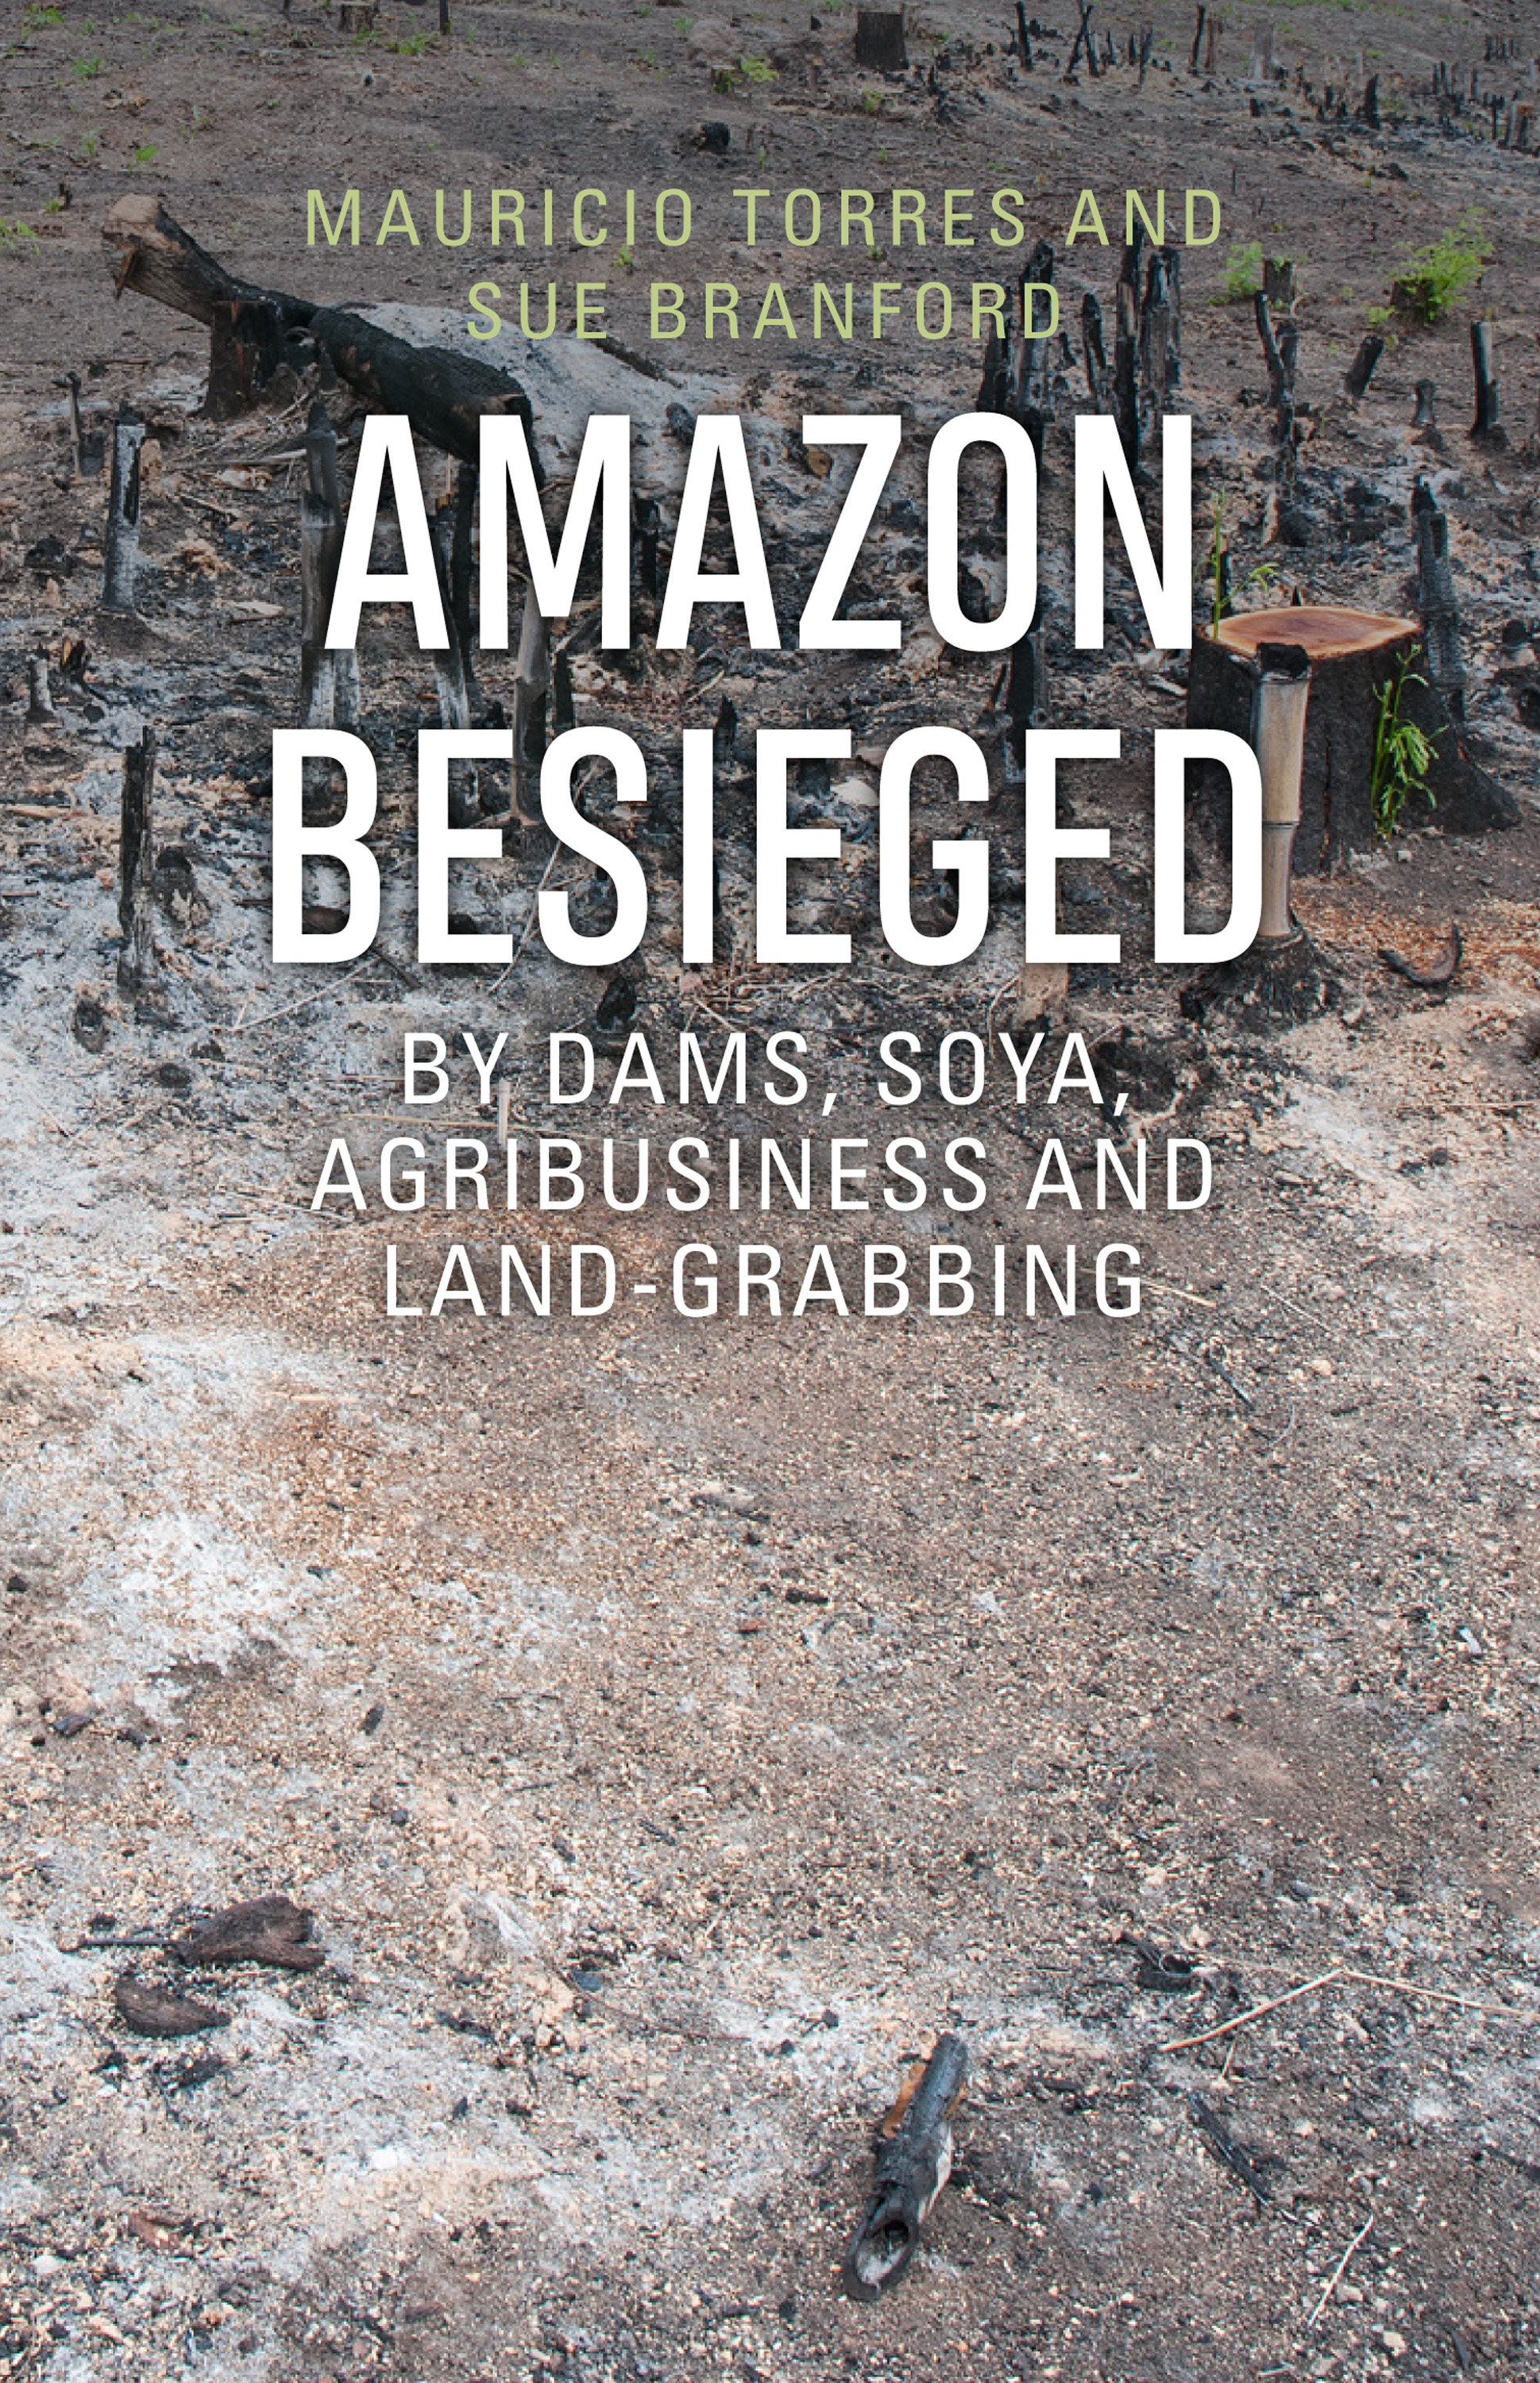 Amazon Besieged